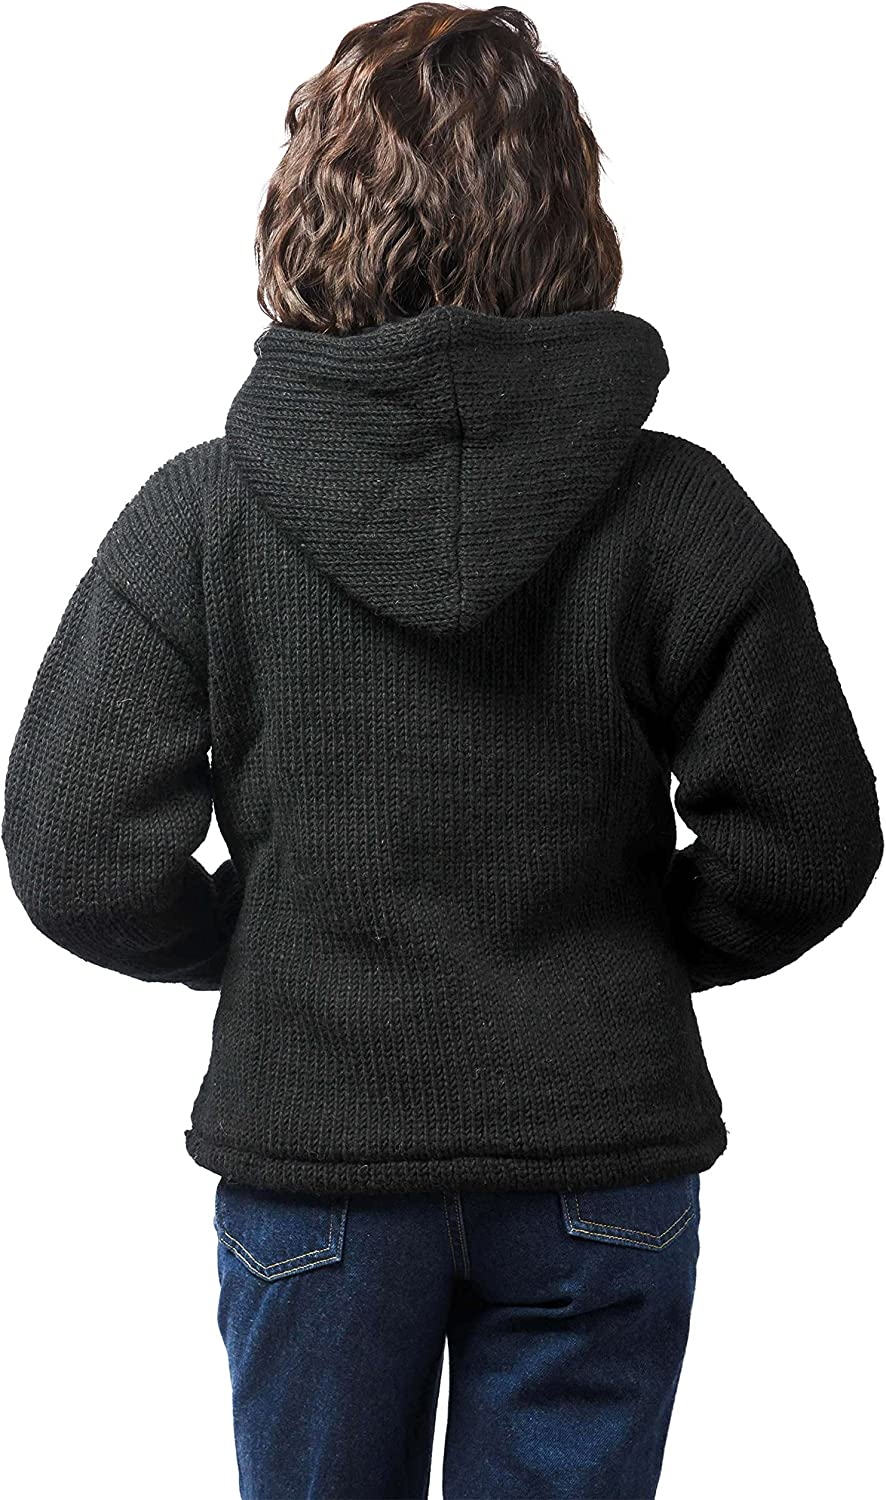 Black TCG Women/'s Winter Coat Hand Knit Wool Outerwear Hoodie